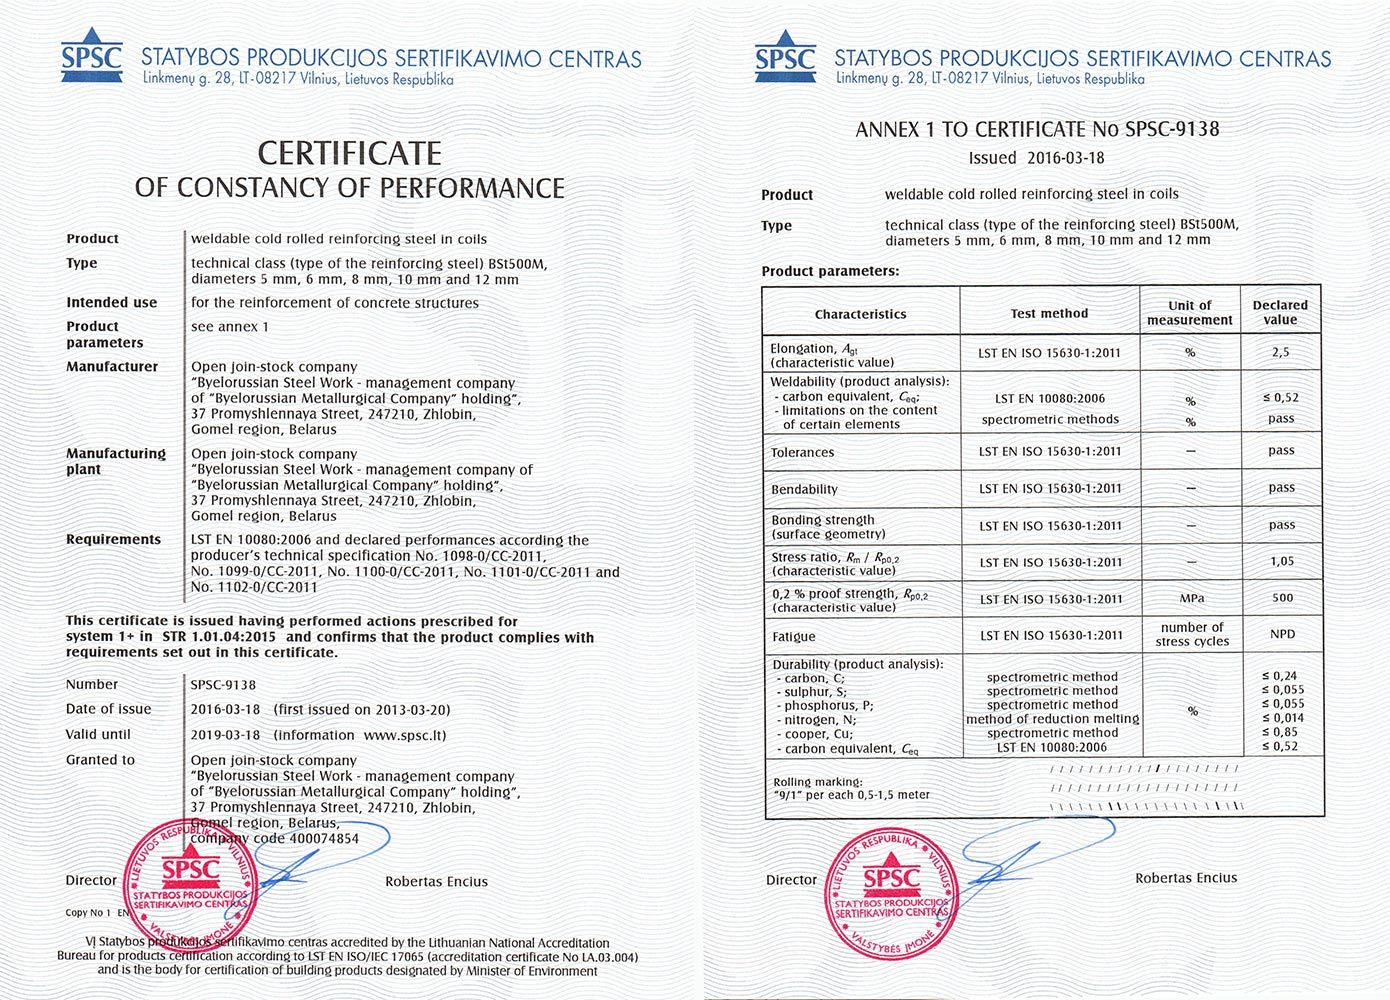 Certificate«SPSC», Lithuania, No. SPSC-9138 for production of weldable cold-deformed reinforcing steel in coils BSt500M Ø 5-12 mm in conformity with standard LST EN 10080:2006 and producer's technical specifications No.1098-0/CC-2011, No.1099-0/CC-2011, No.1100-0/CC-2011, No.1101-0/CC-2011, No.1102-0/CC-2011